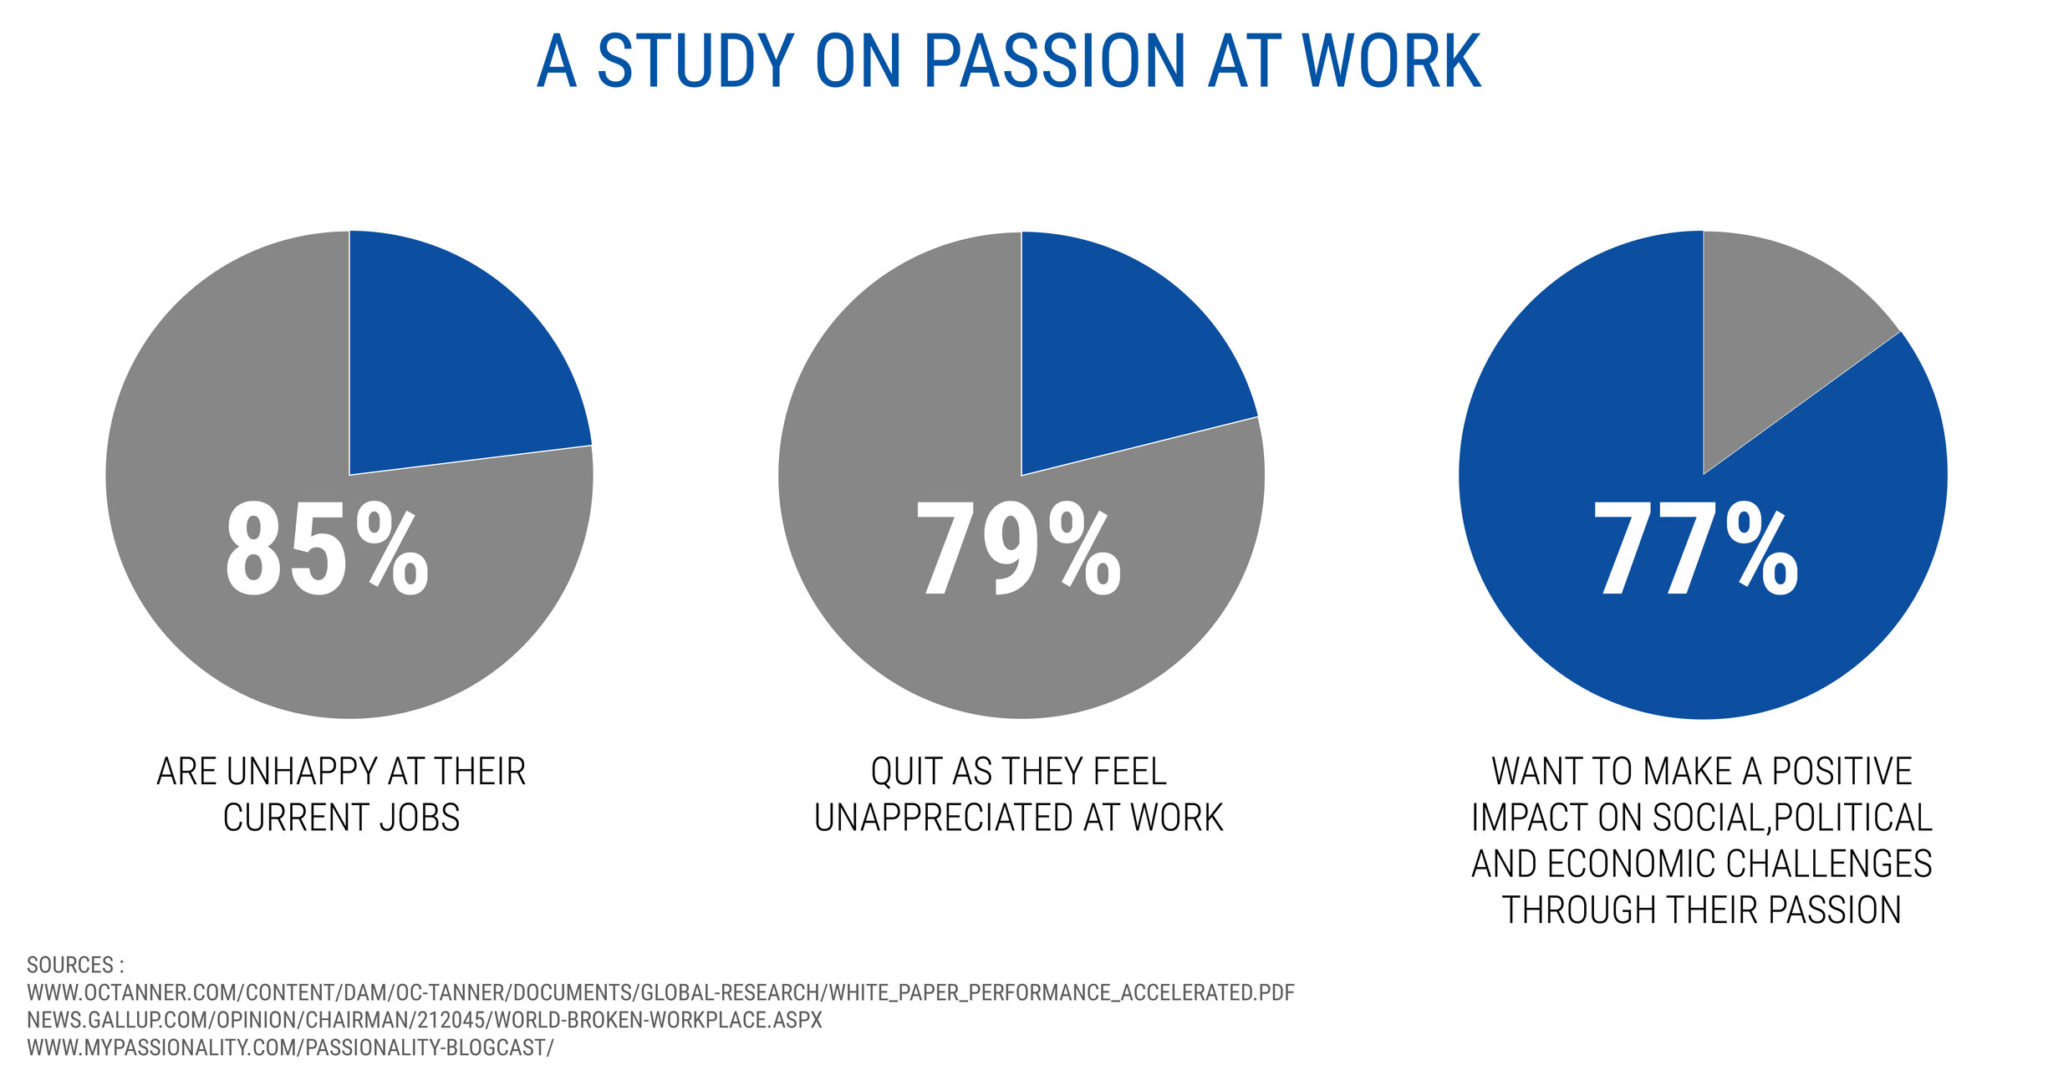 A study on a passion at work - starting a coaching business while working full-time